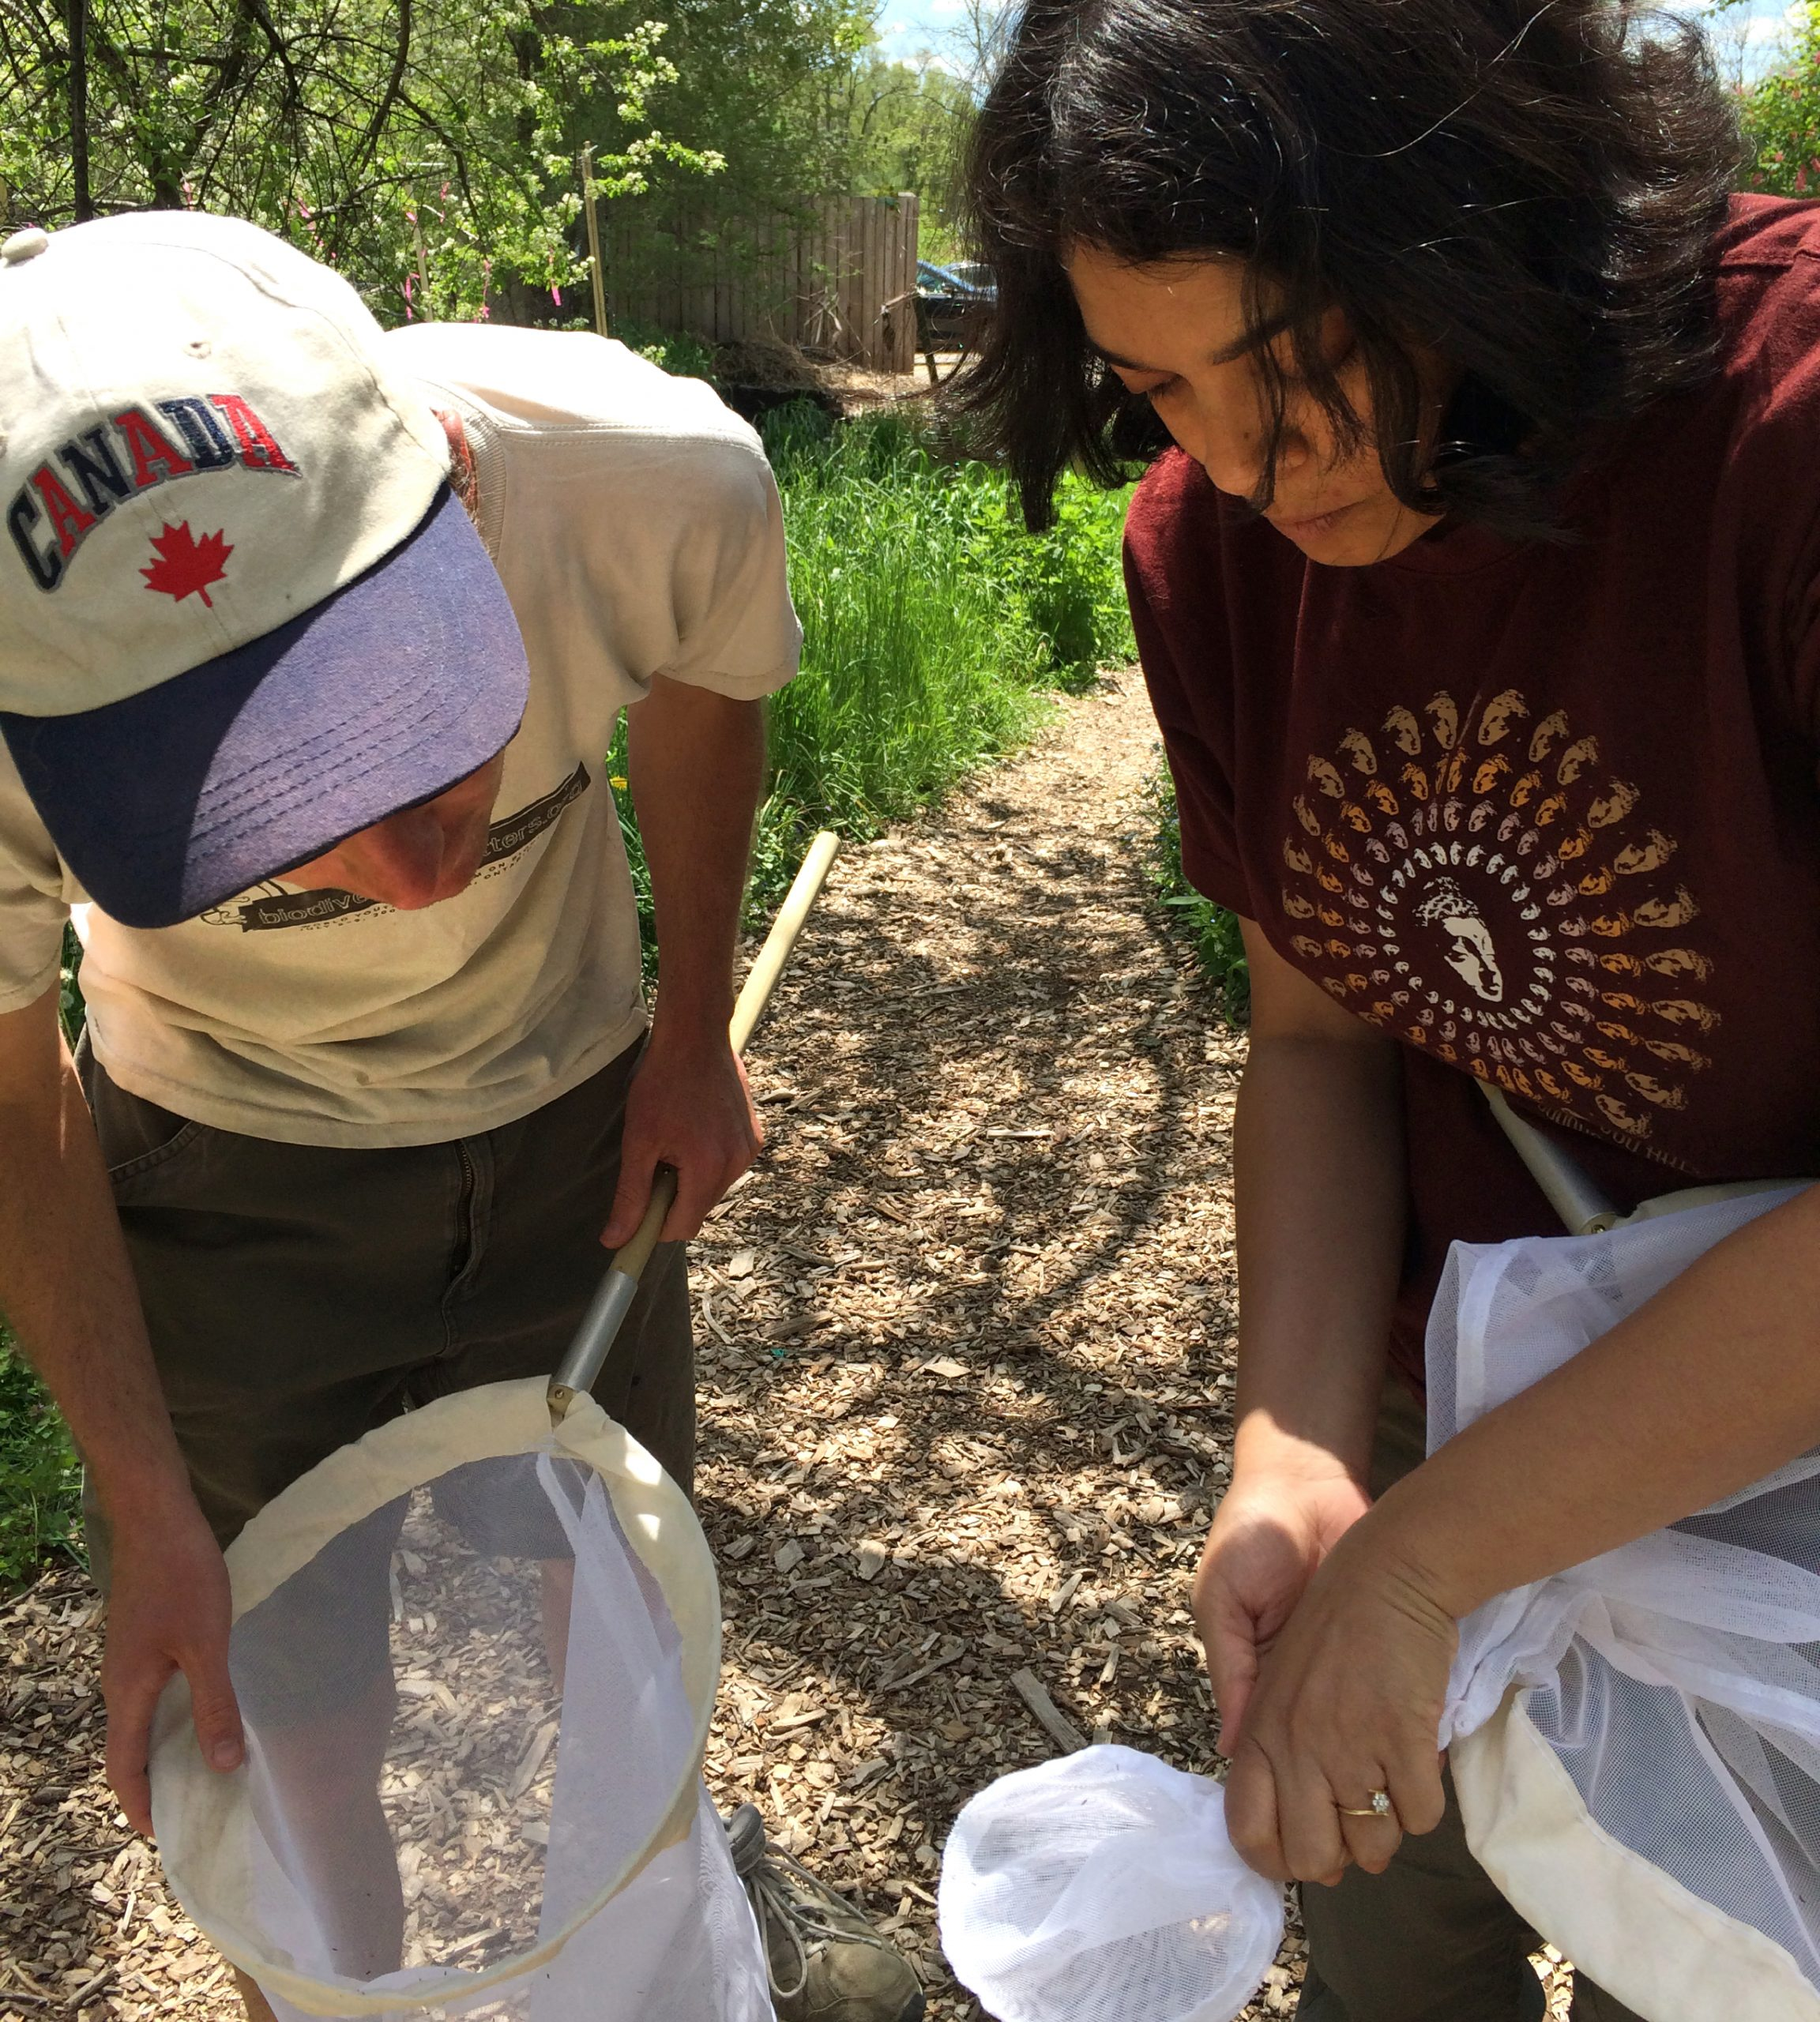 Gordon Fitch and Chatura Vaidya collect bees with nets.